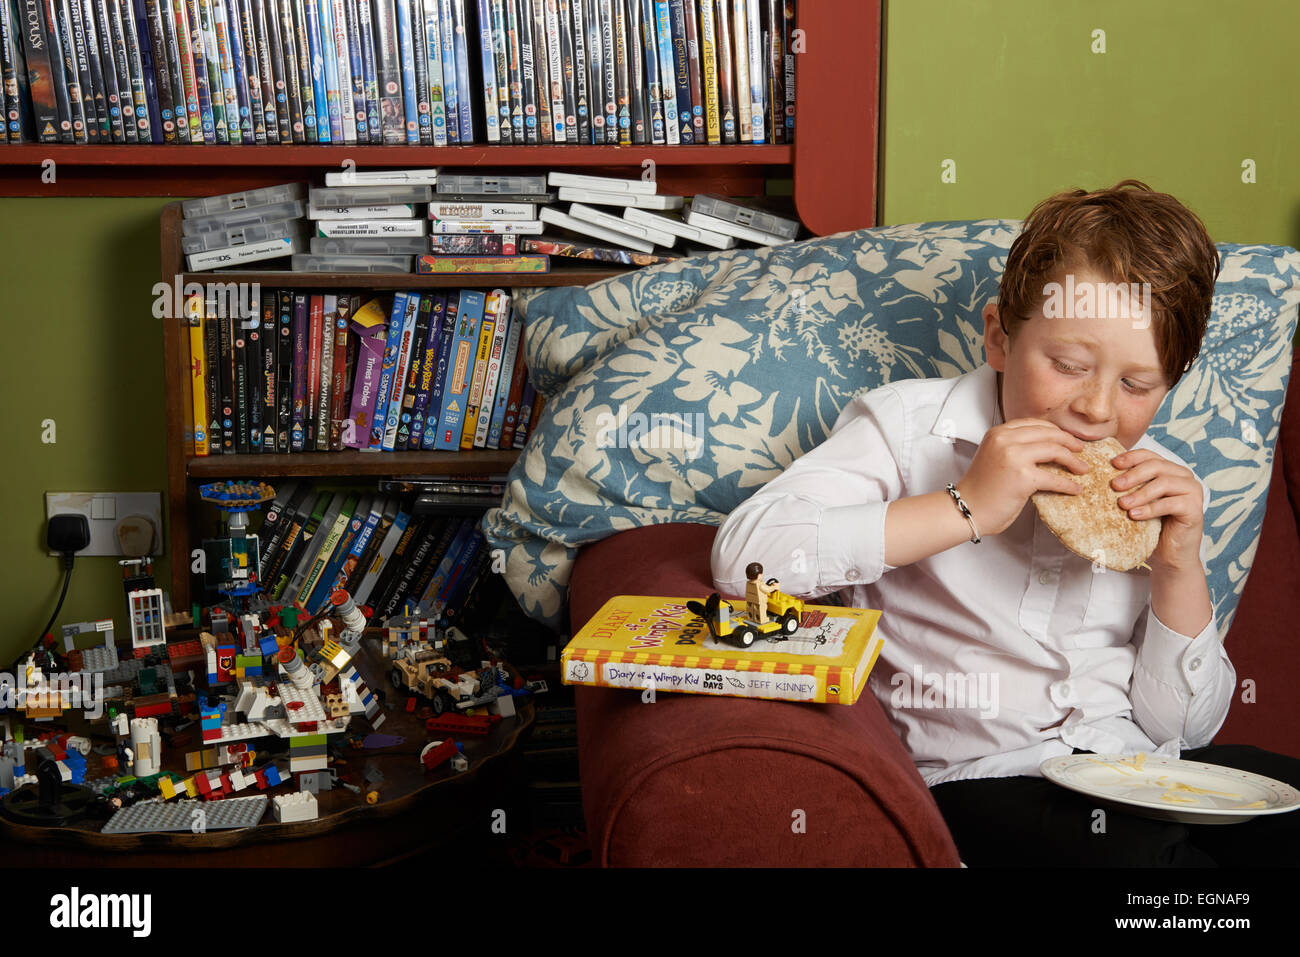 10-year old boy at home after school eating a pitta bread sandwich - Stock Image